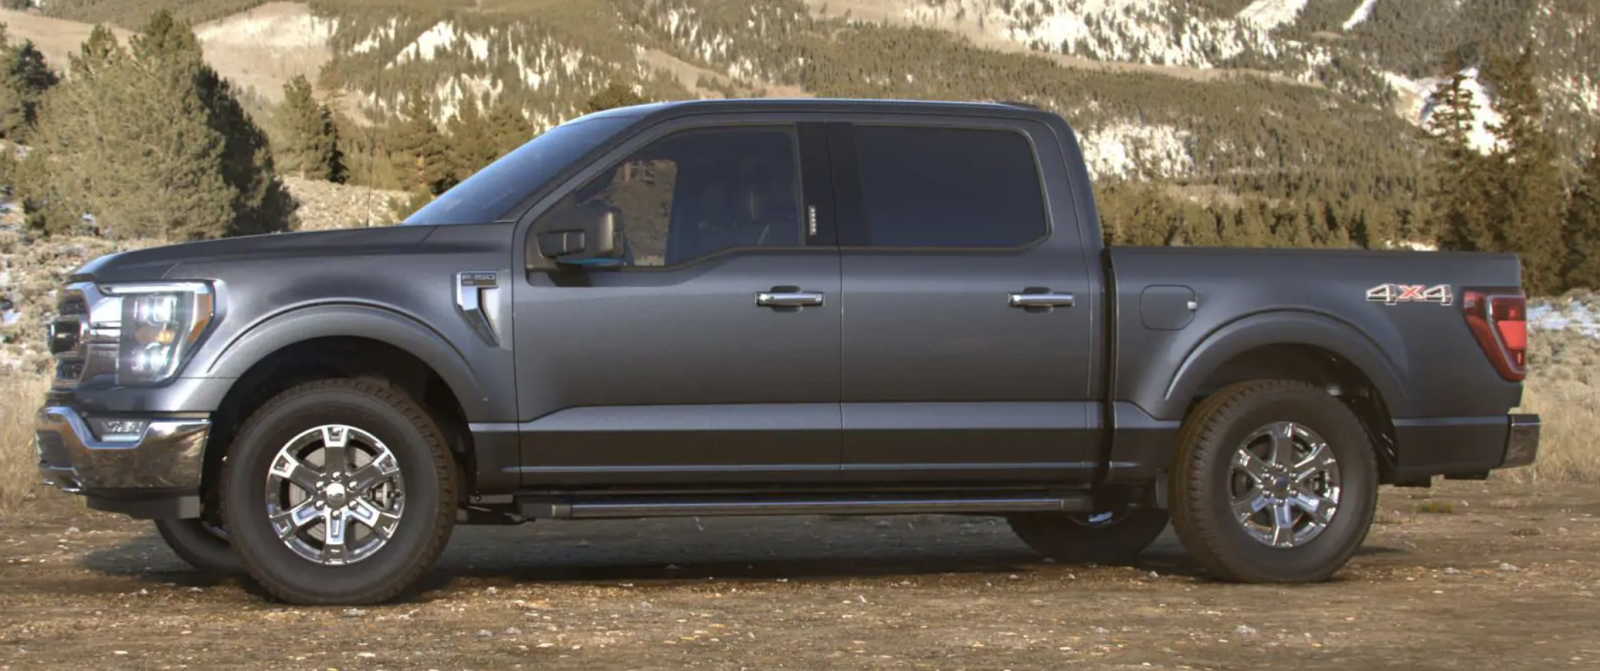 Ford-F150-Carbonized-Gray.png